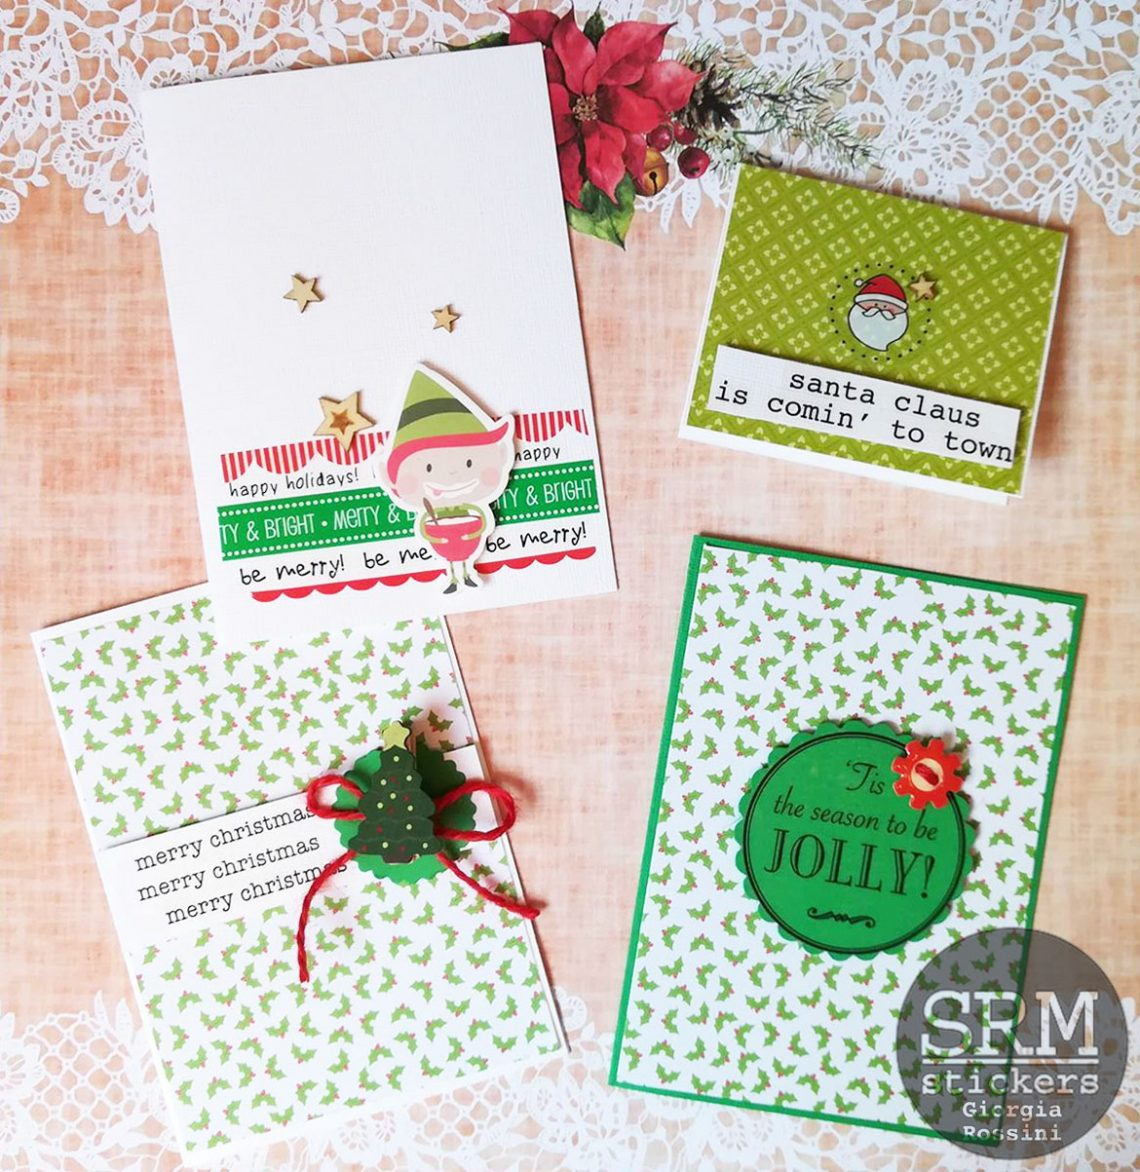 SRM stickers – CAS Christmas cards